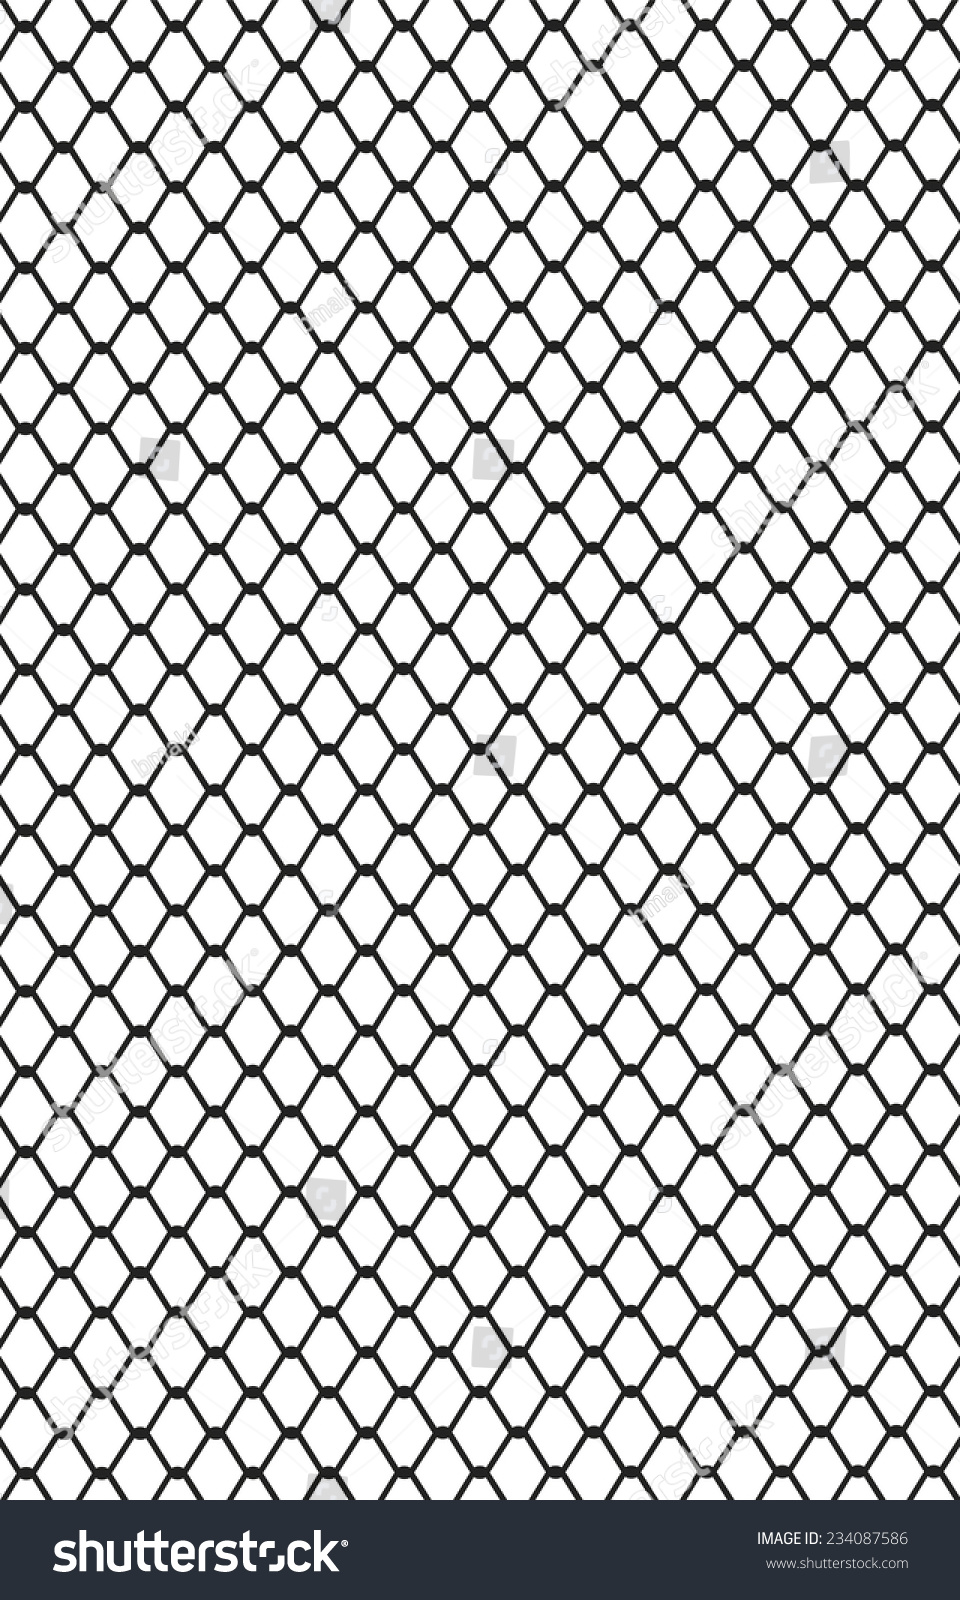 Picture Metal Wire Mesh Made Steel Stock Vector 234087586 - Shutterstock